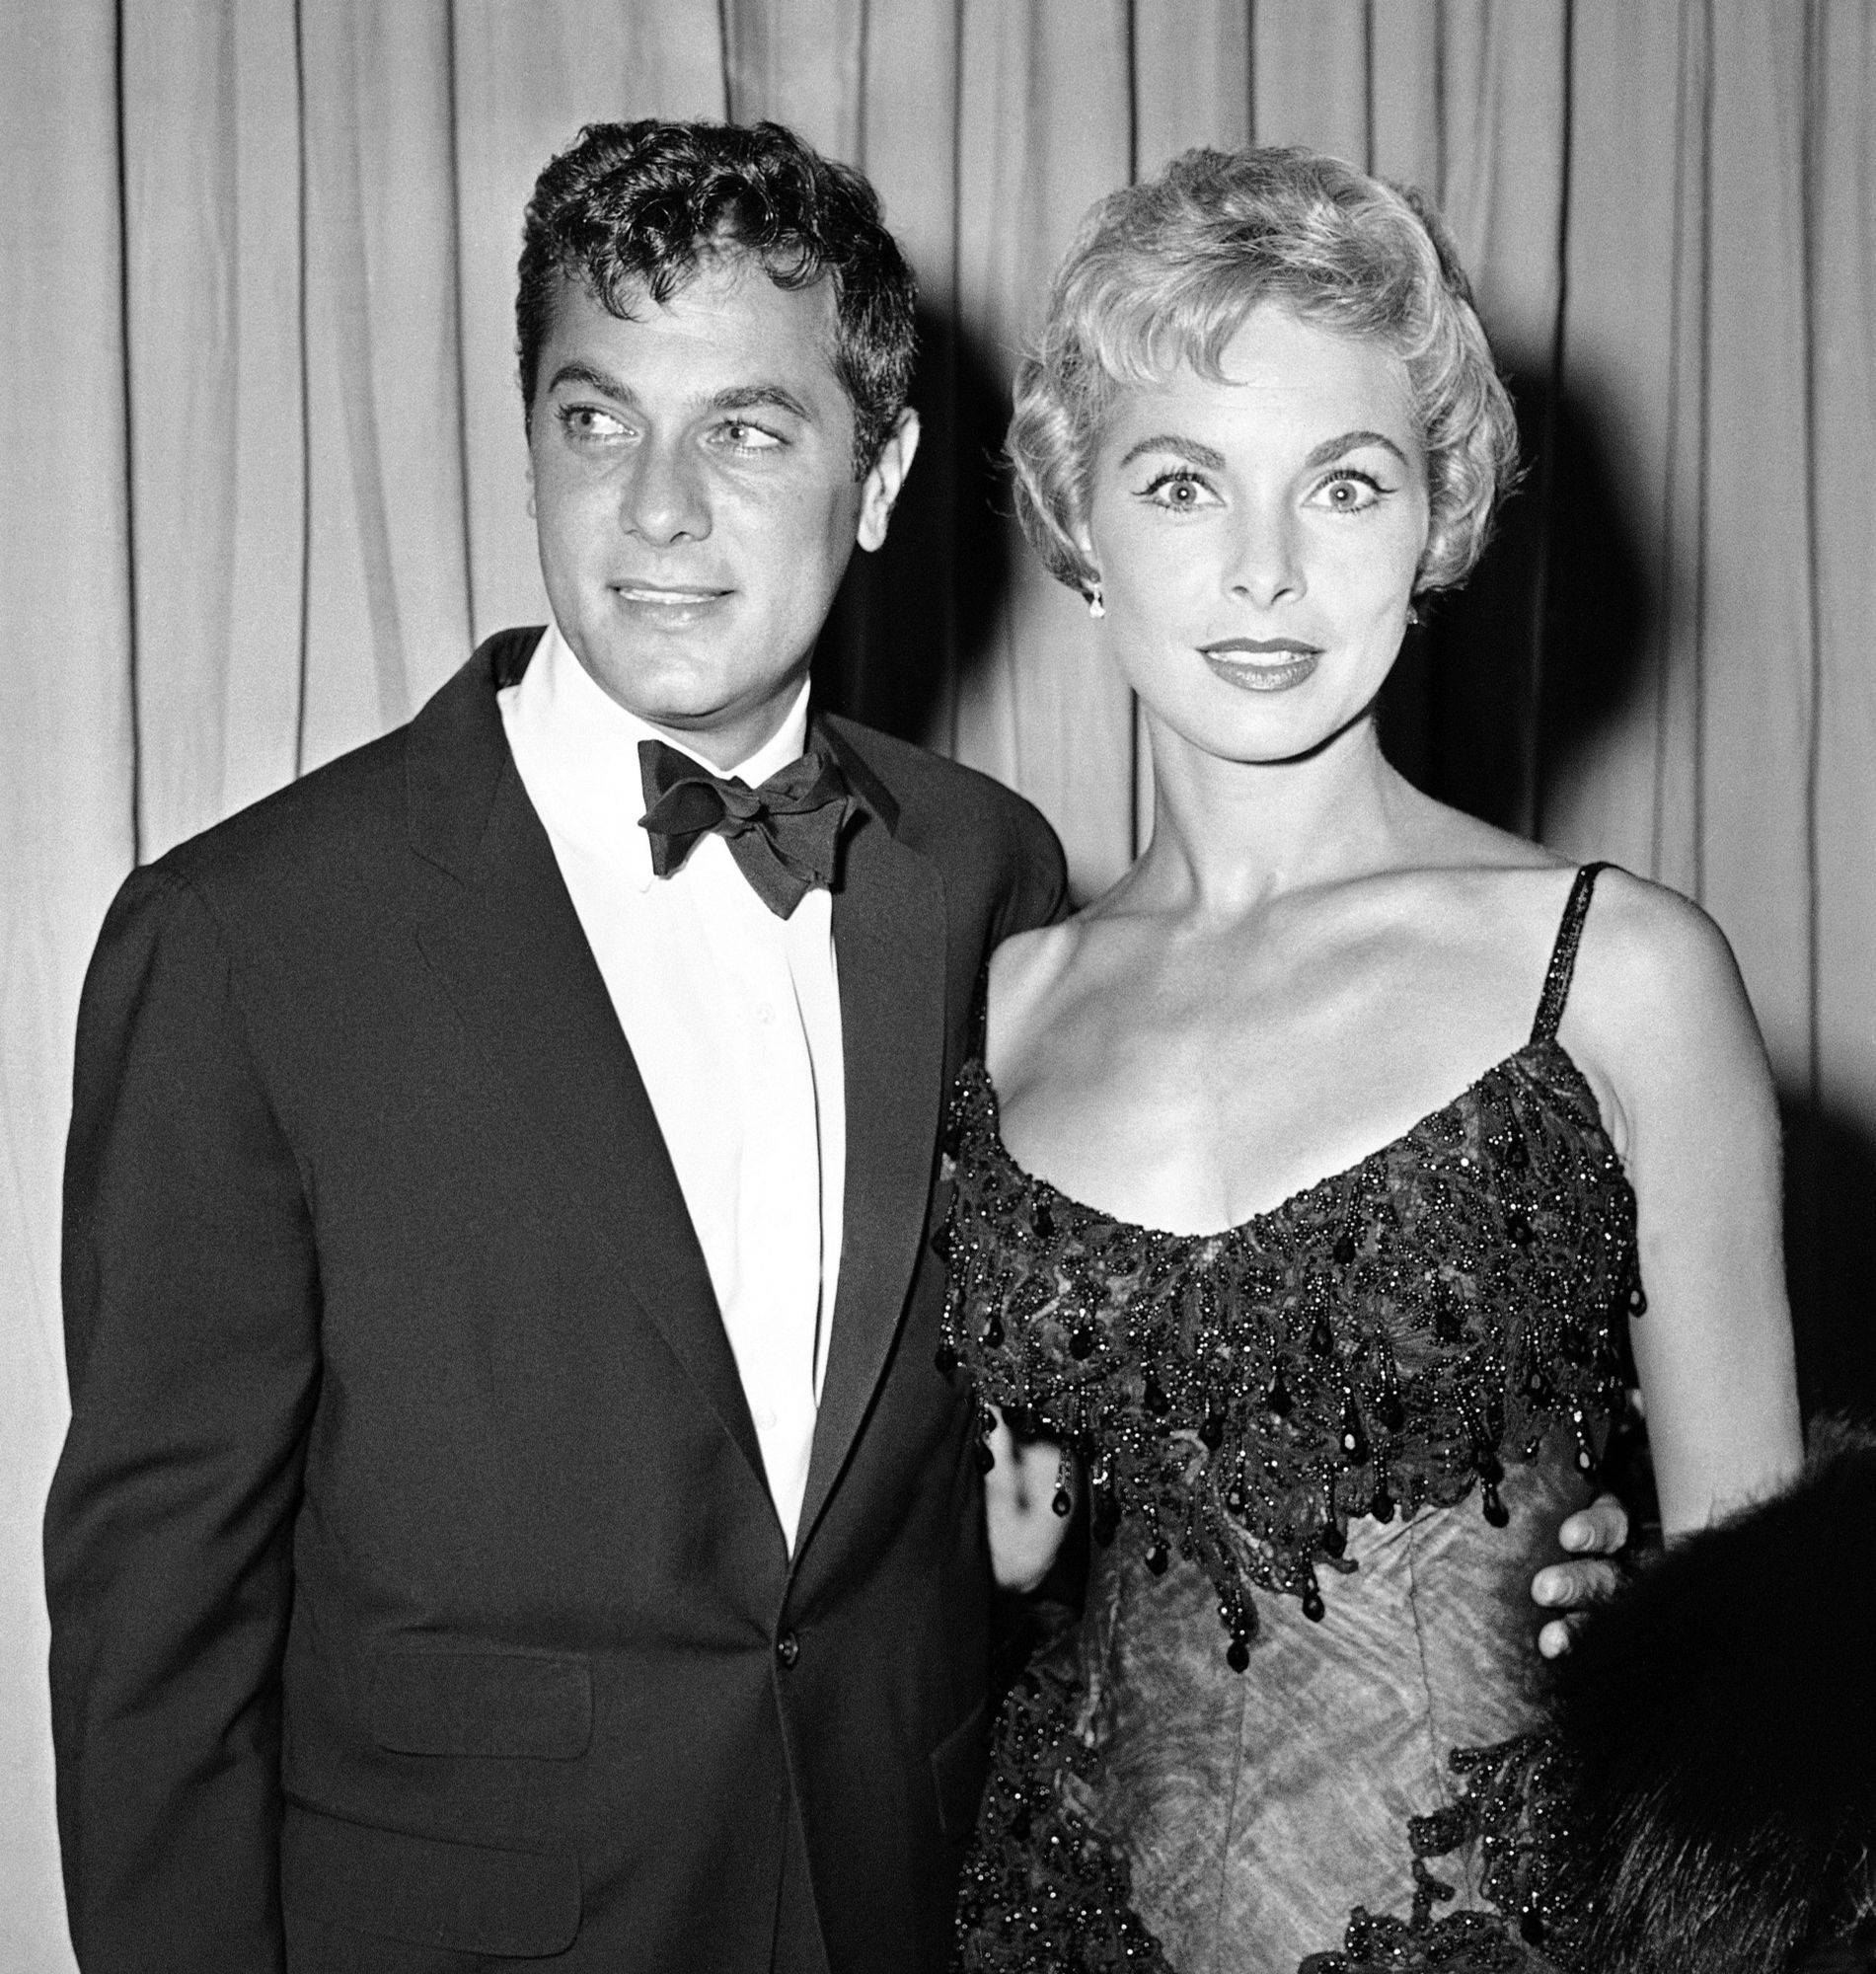 Actor Tony Curtis and his wife Janet Leigh are shown at Academy Awards, in this April 6, 1959 file photo taken in Hollywood. Curtis died Wednesday Sept. 29, 2010 at his Las Vegas area home of a cardiac arrest at 85 according to the Clark County, Nev. coroner.